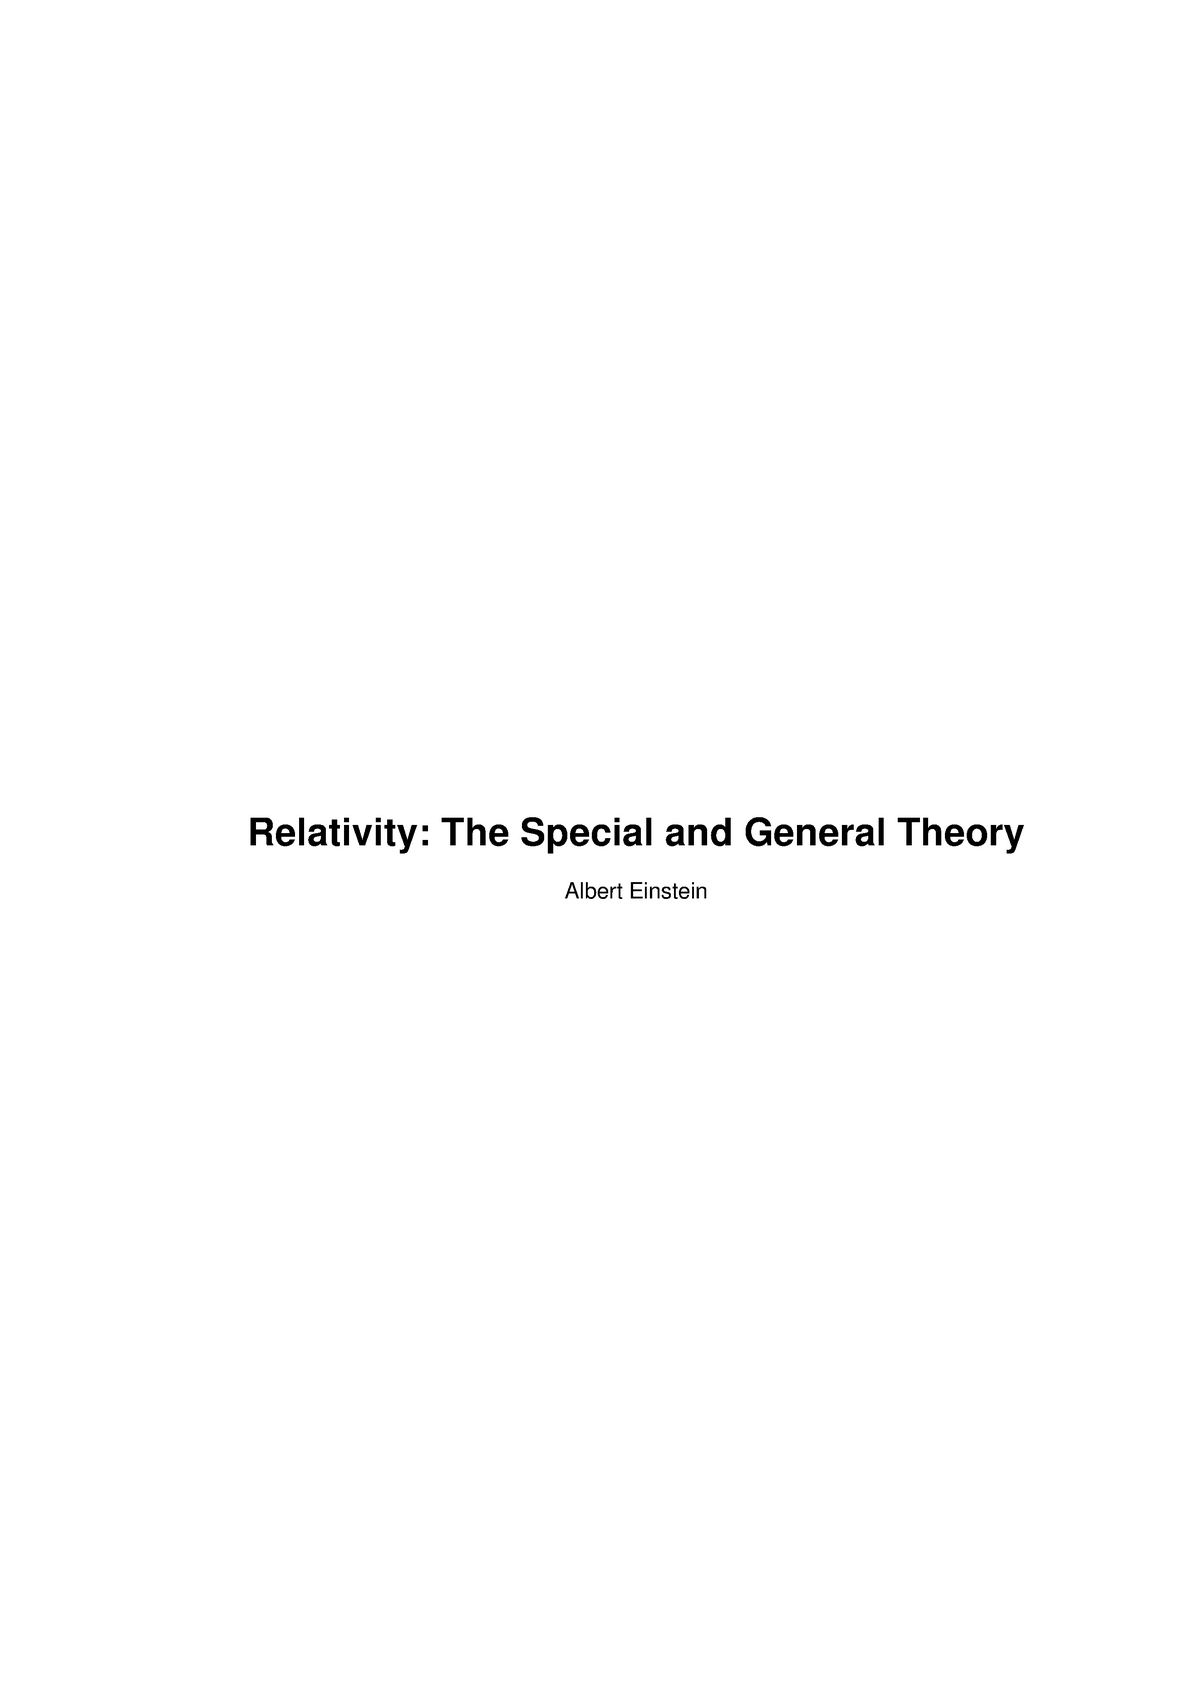 ebook - PDF - Science) Physics - Relativity - The Special